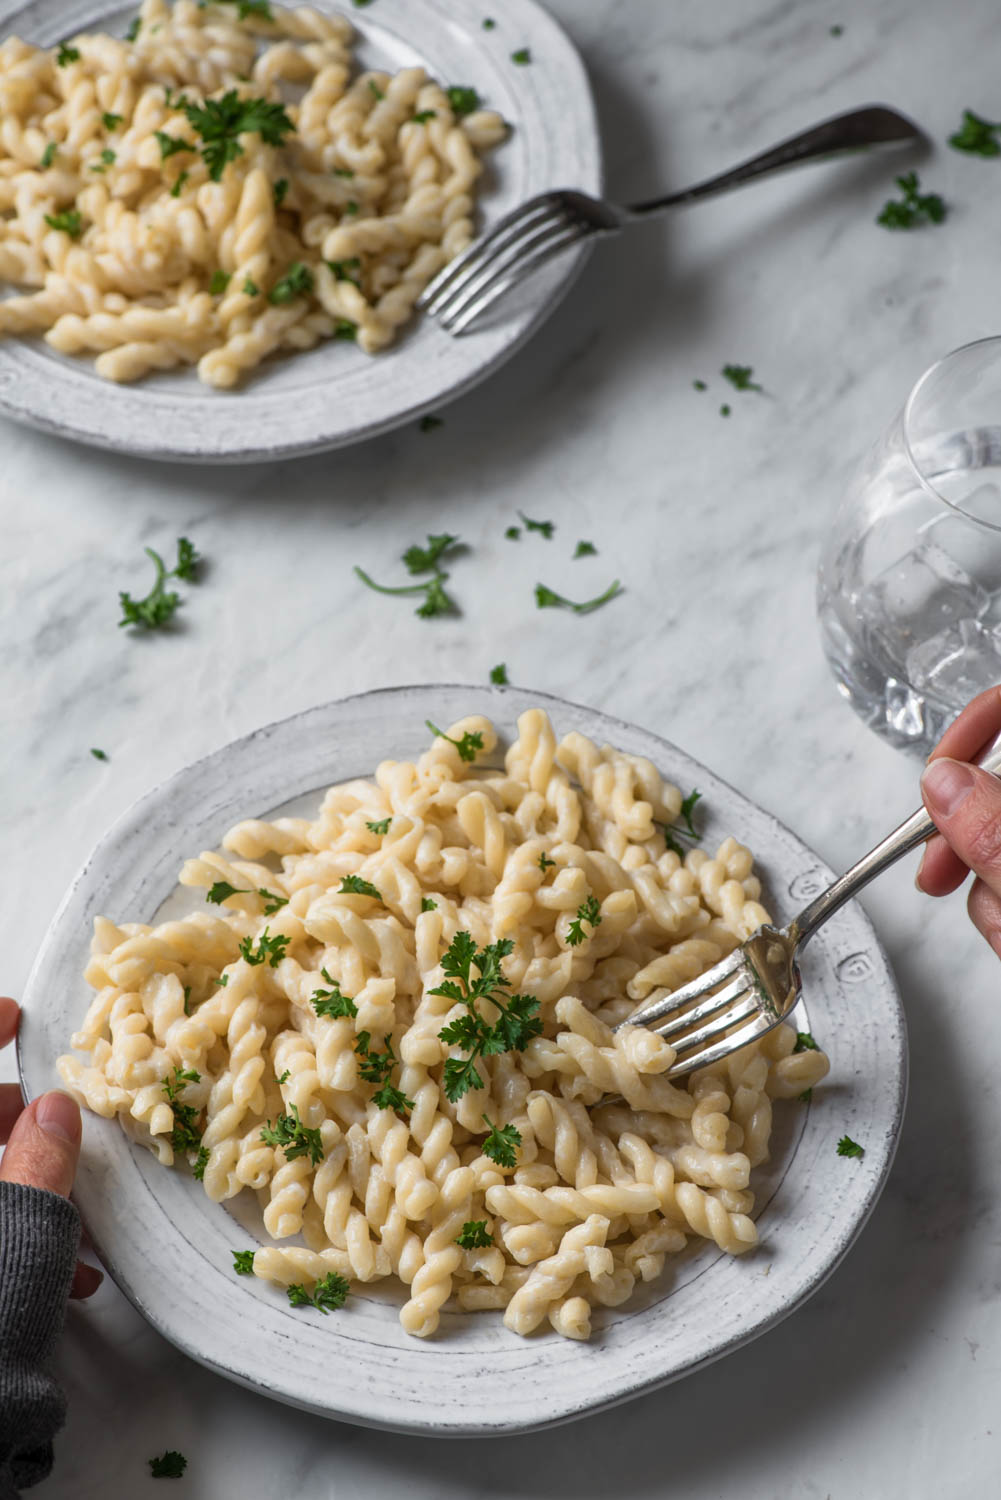 Creamy Gemelli Pasta with Fresh Parsley, allergy free, dairy free, egg free, soy free, gluten free, peanut free, tree nuts free, healthy, simple dinner